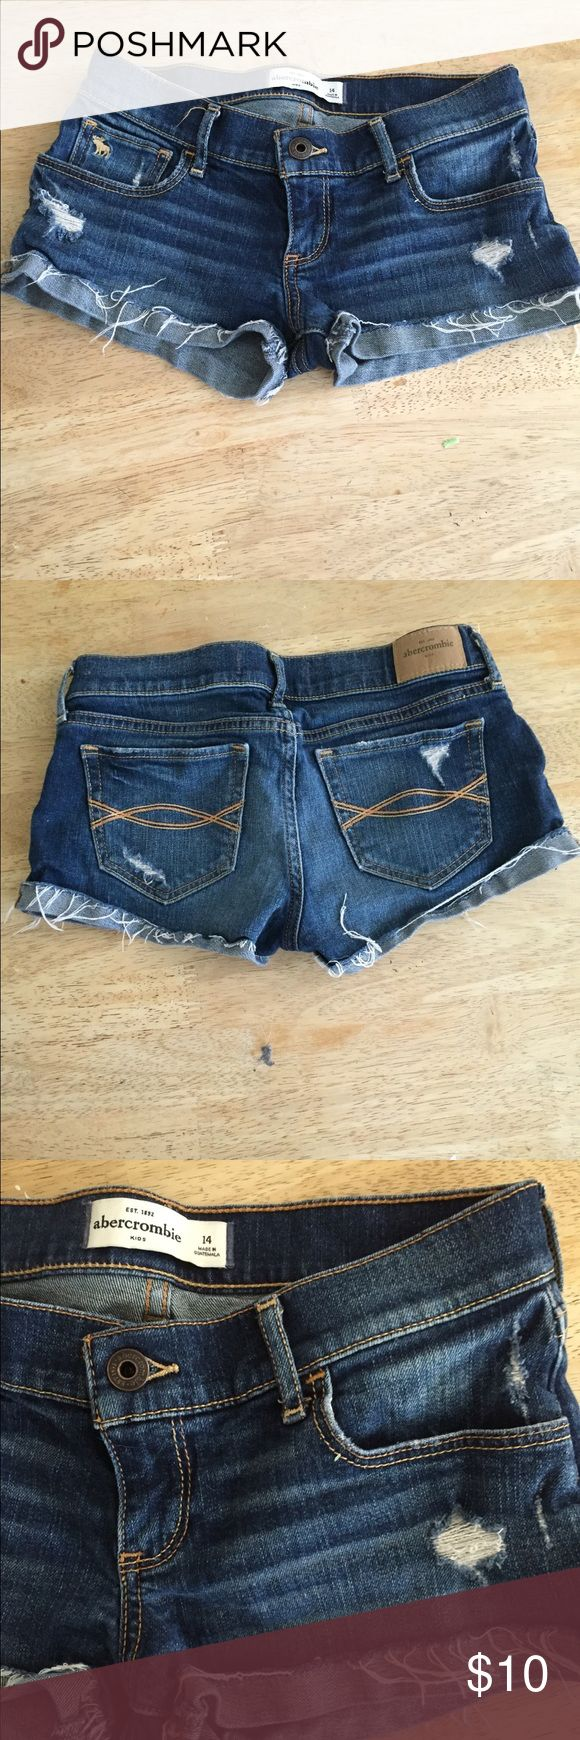 Abercrombie Kids Jean Shorts Abercrombie Kids girls jean shorts size 14 girls. Frayed and distressed for style. Excellent used condition. Thanks! abercrombie kids Bottoms Shorts